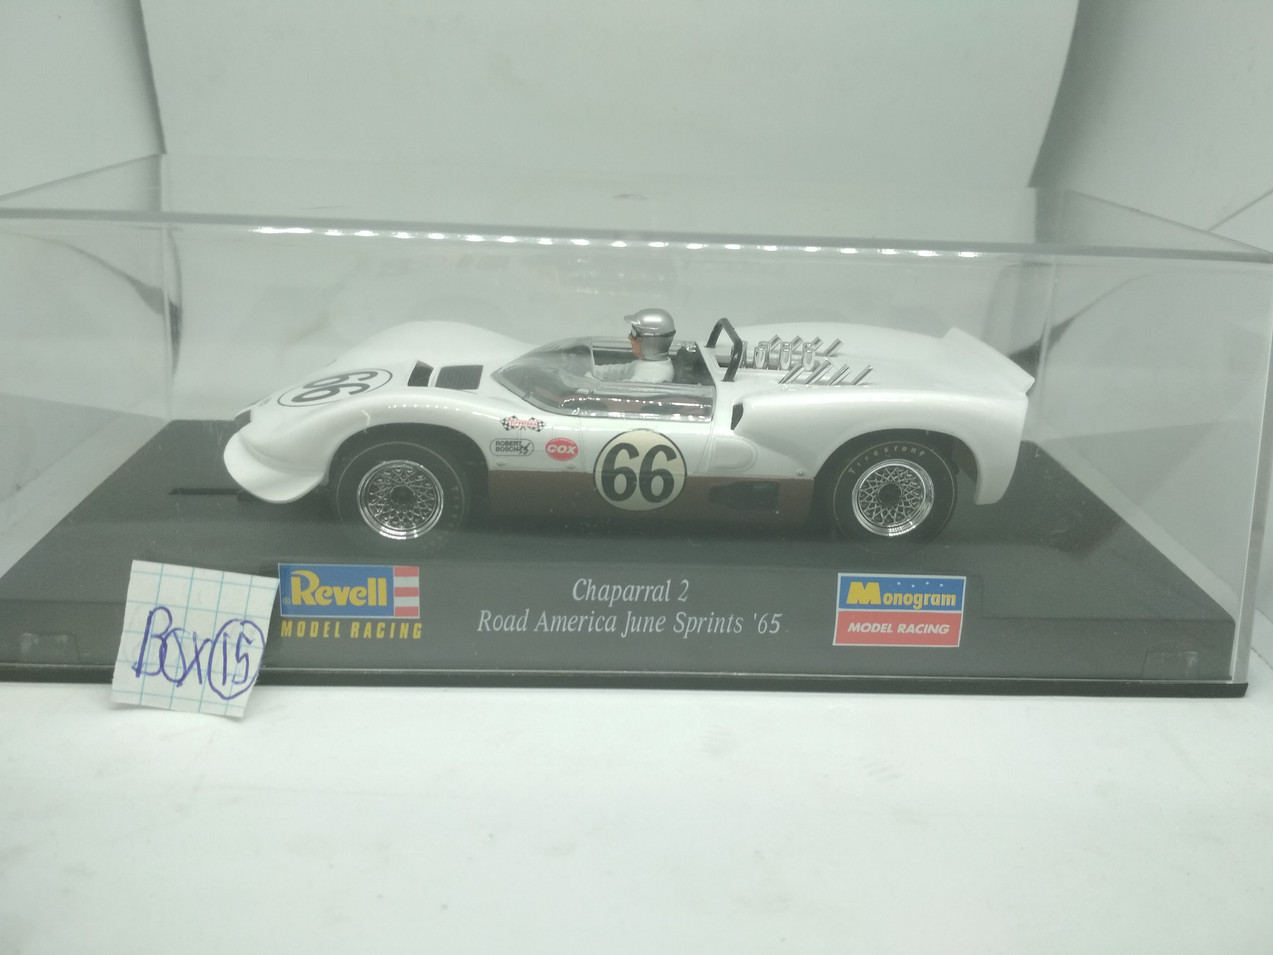 CHAPARRAL 2 ROAD AMERICA JUNE SPRINTS '65